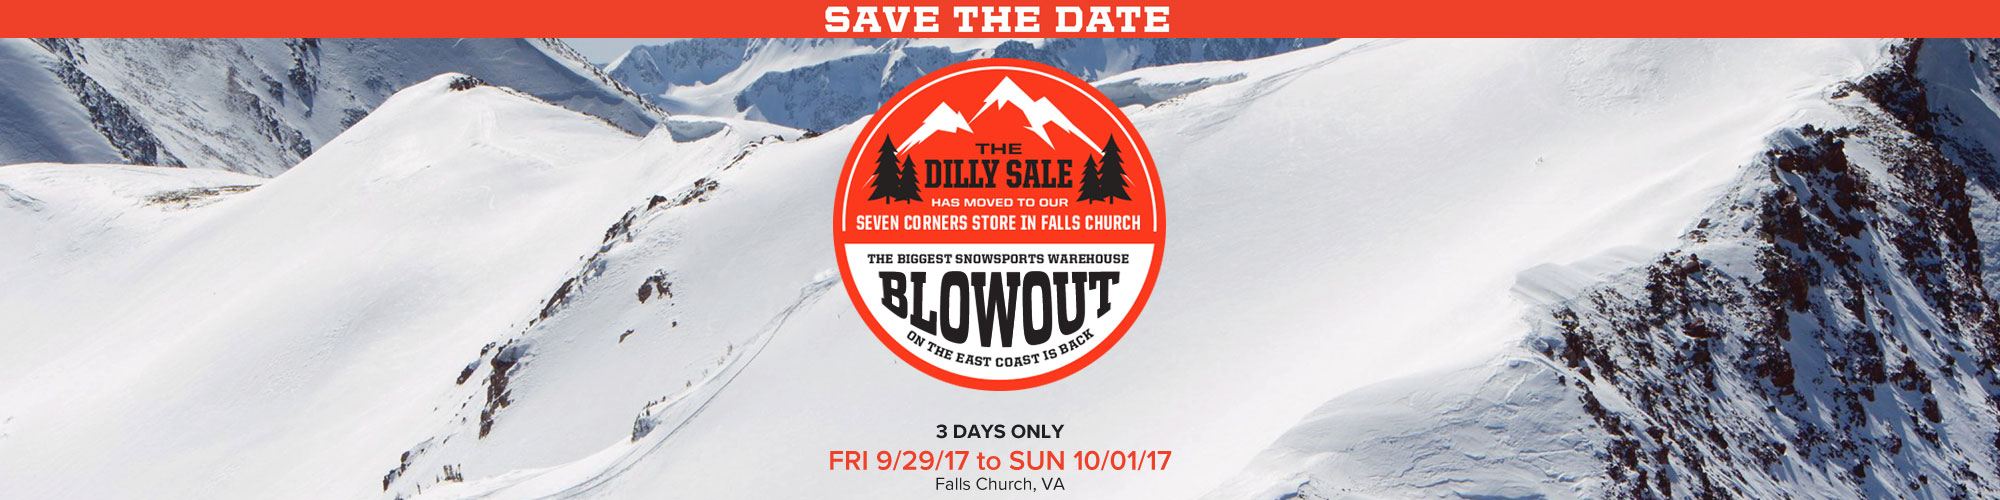 Dilly In Chantilly Ski & Snowboard Blowout